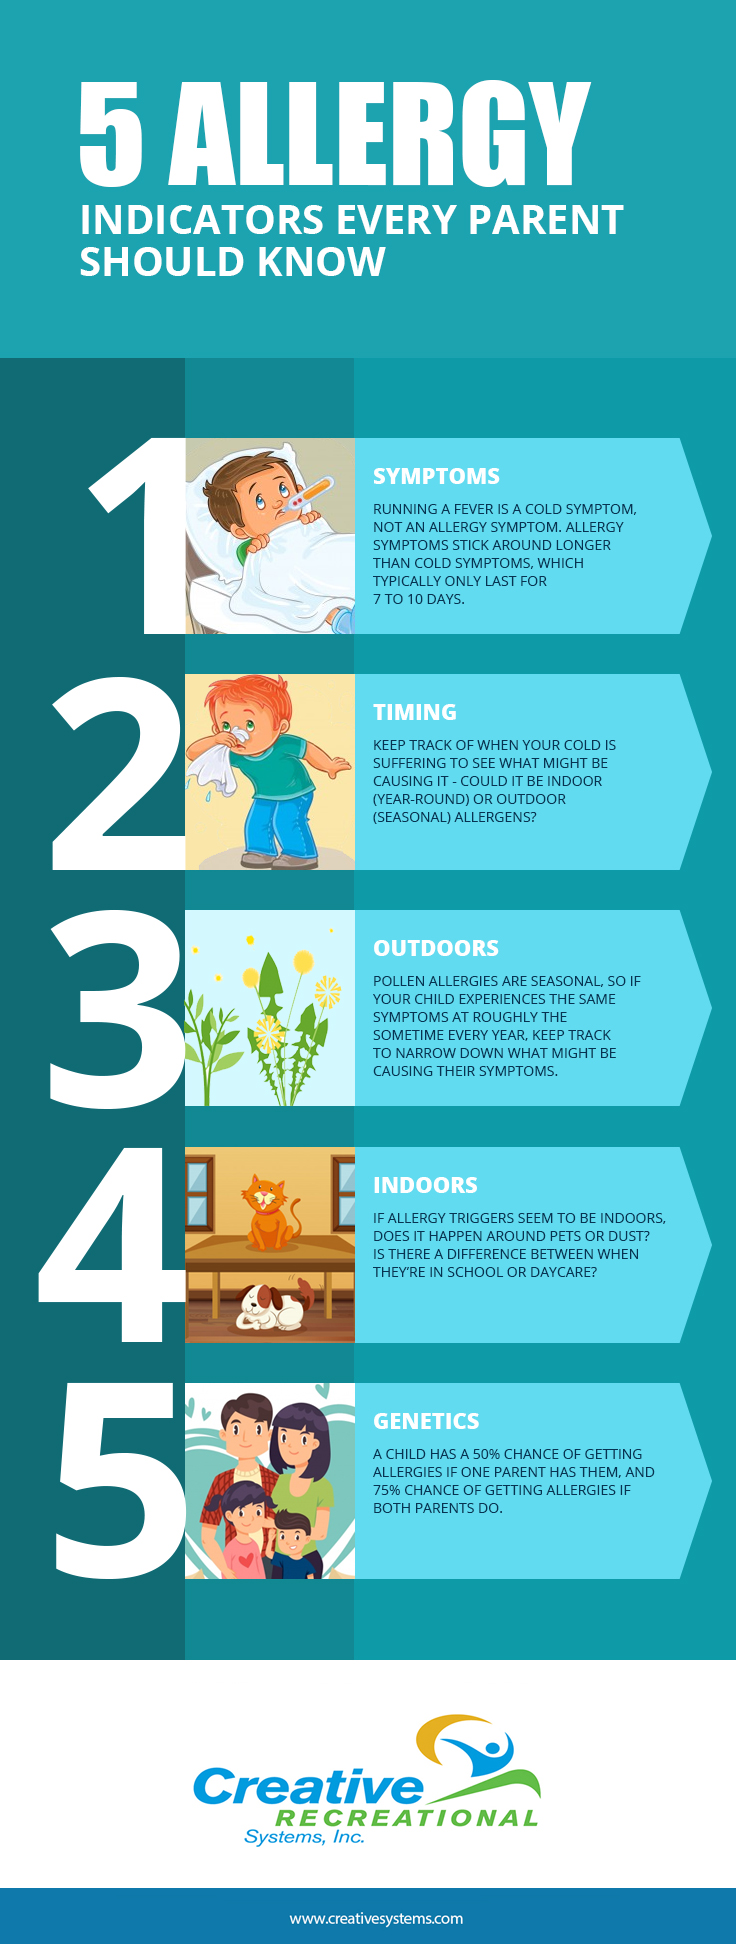 5 Allergy Indicators every parent should know